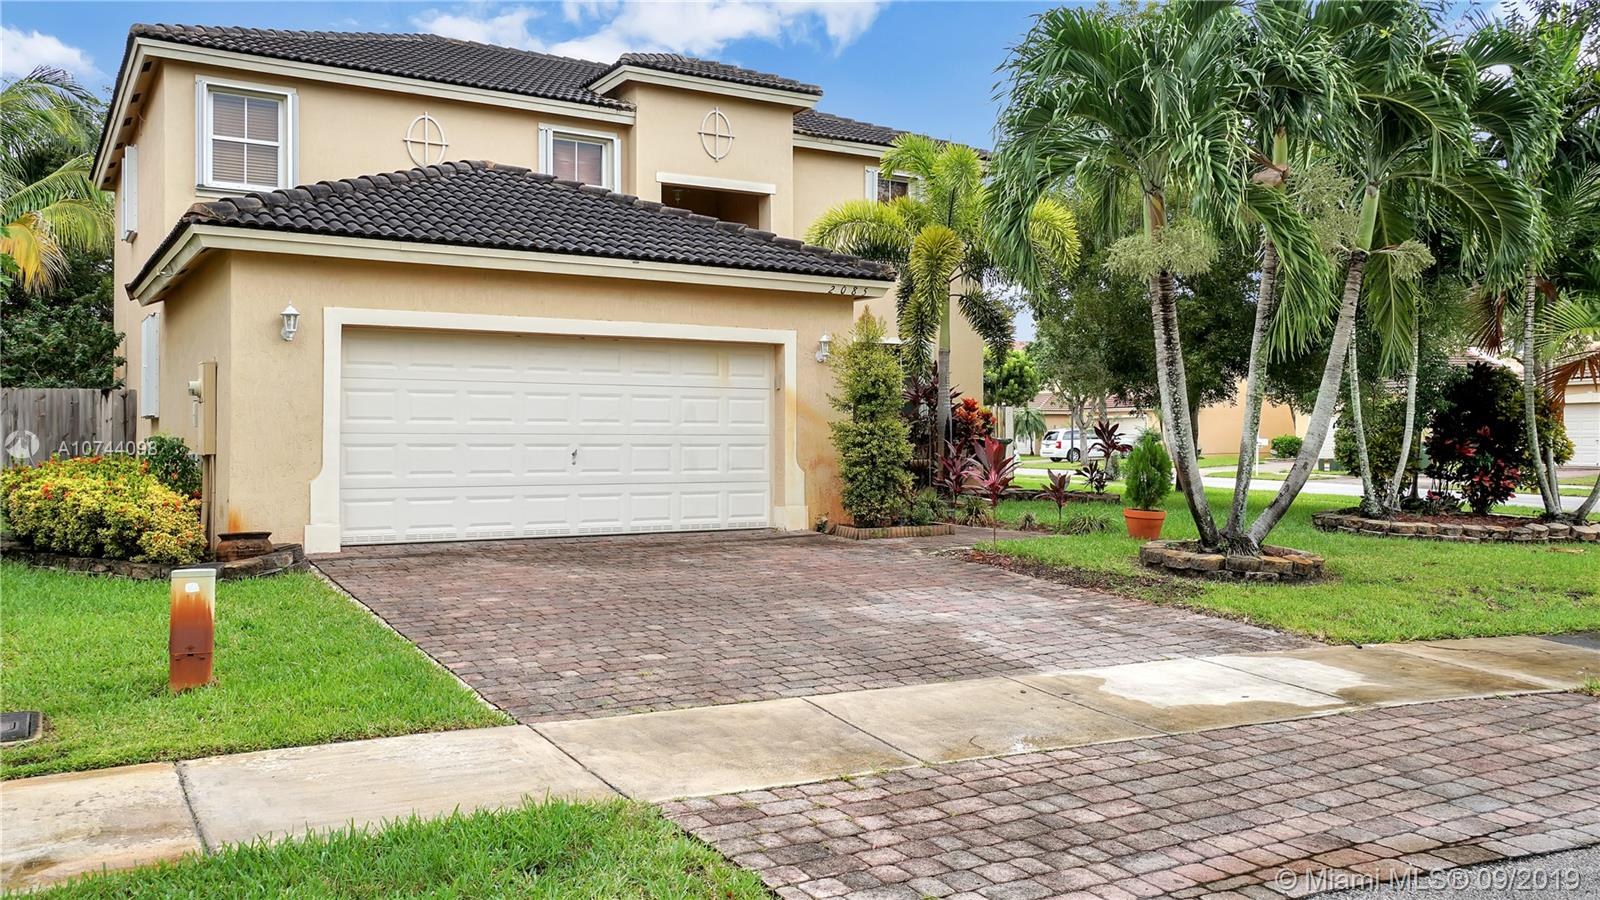 2085 SE 17th Ct Property Photo - Homestead, FL real estate listing